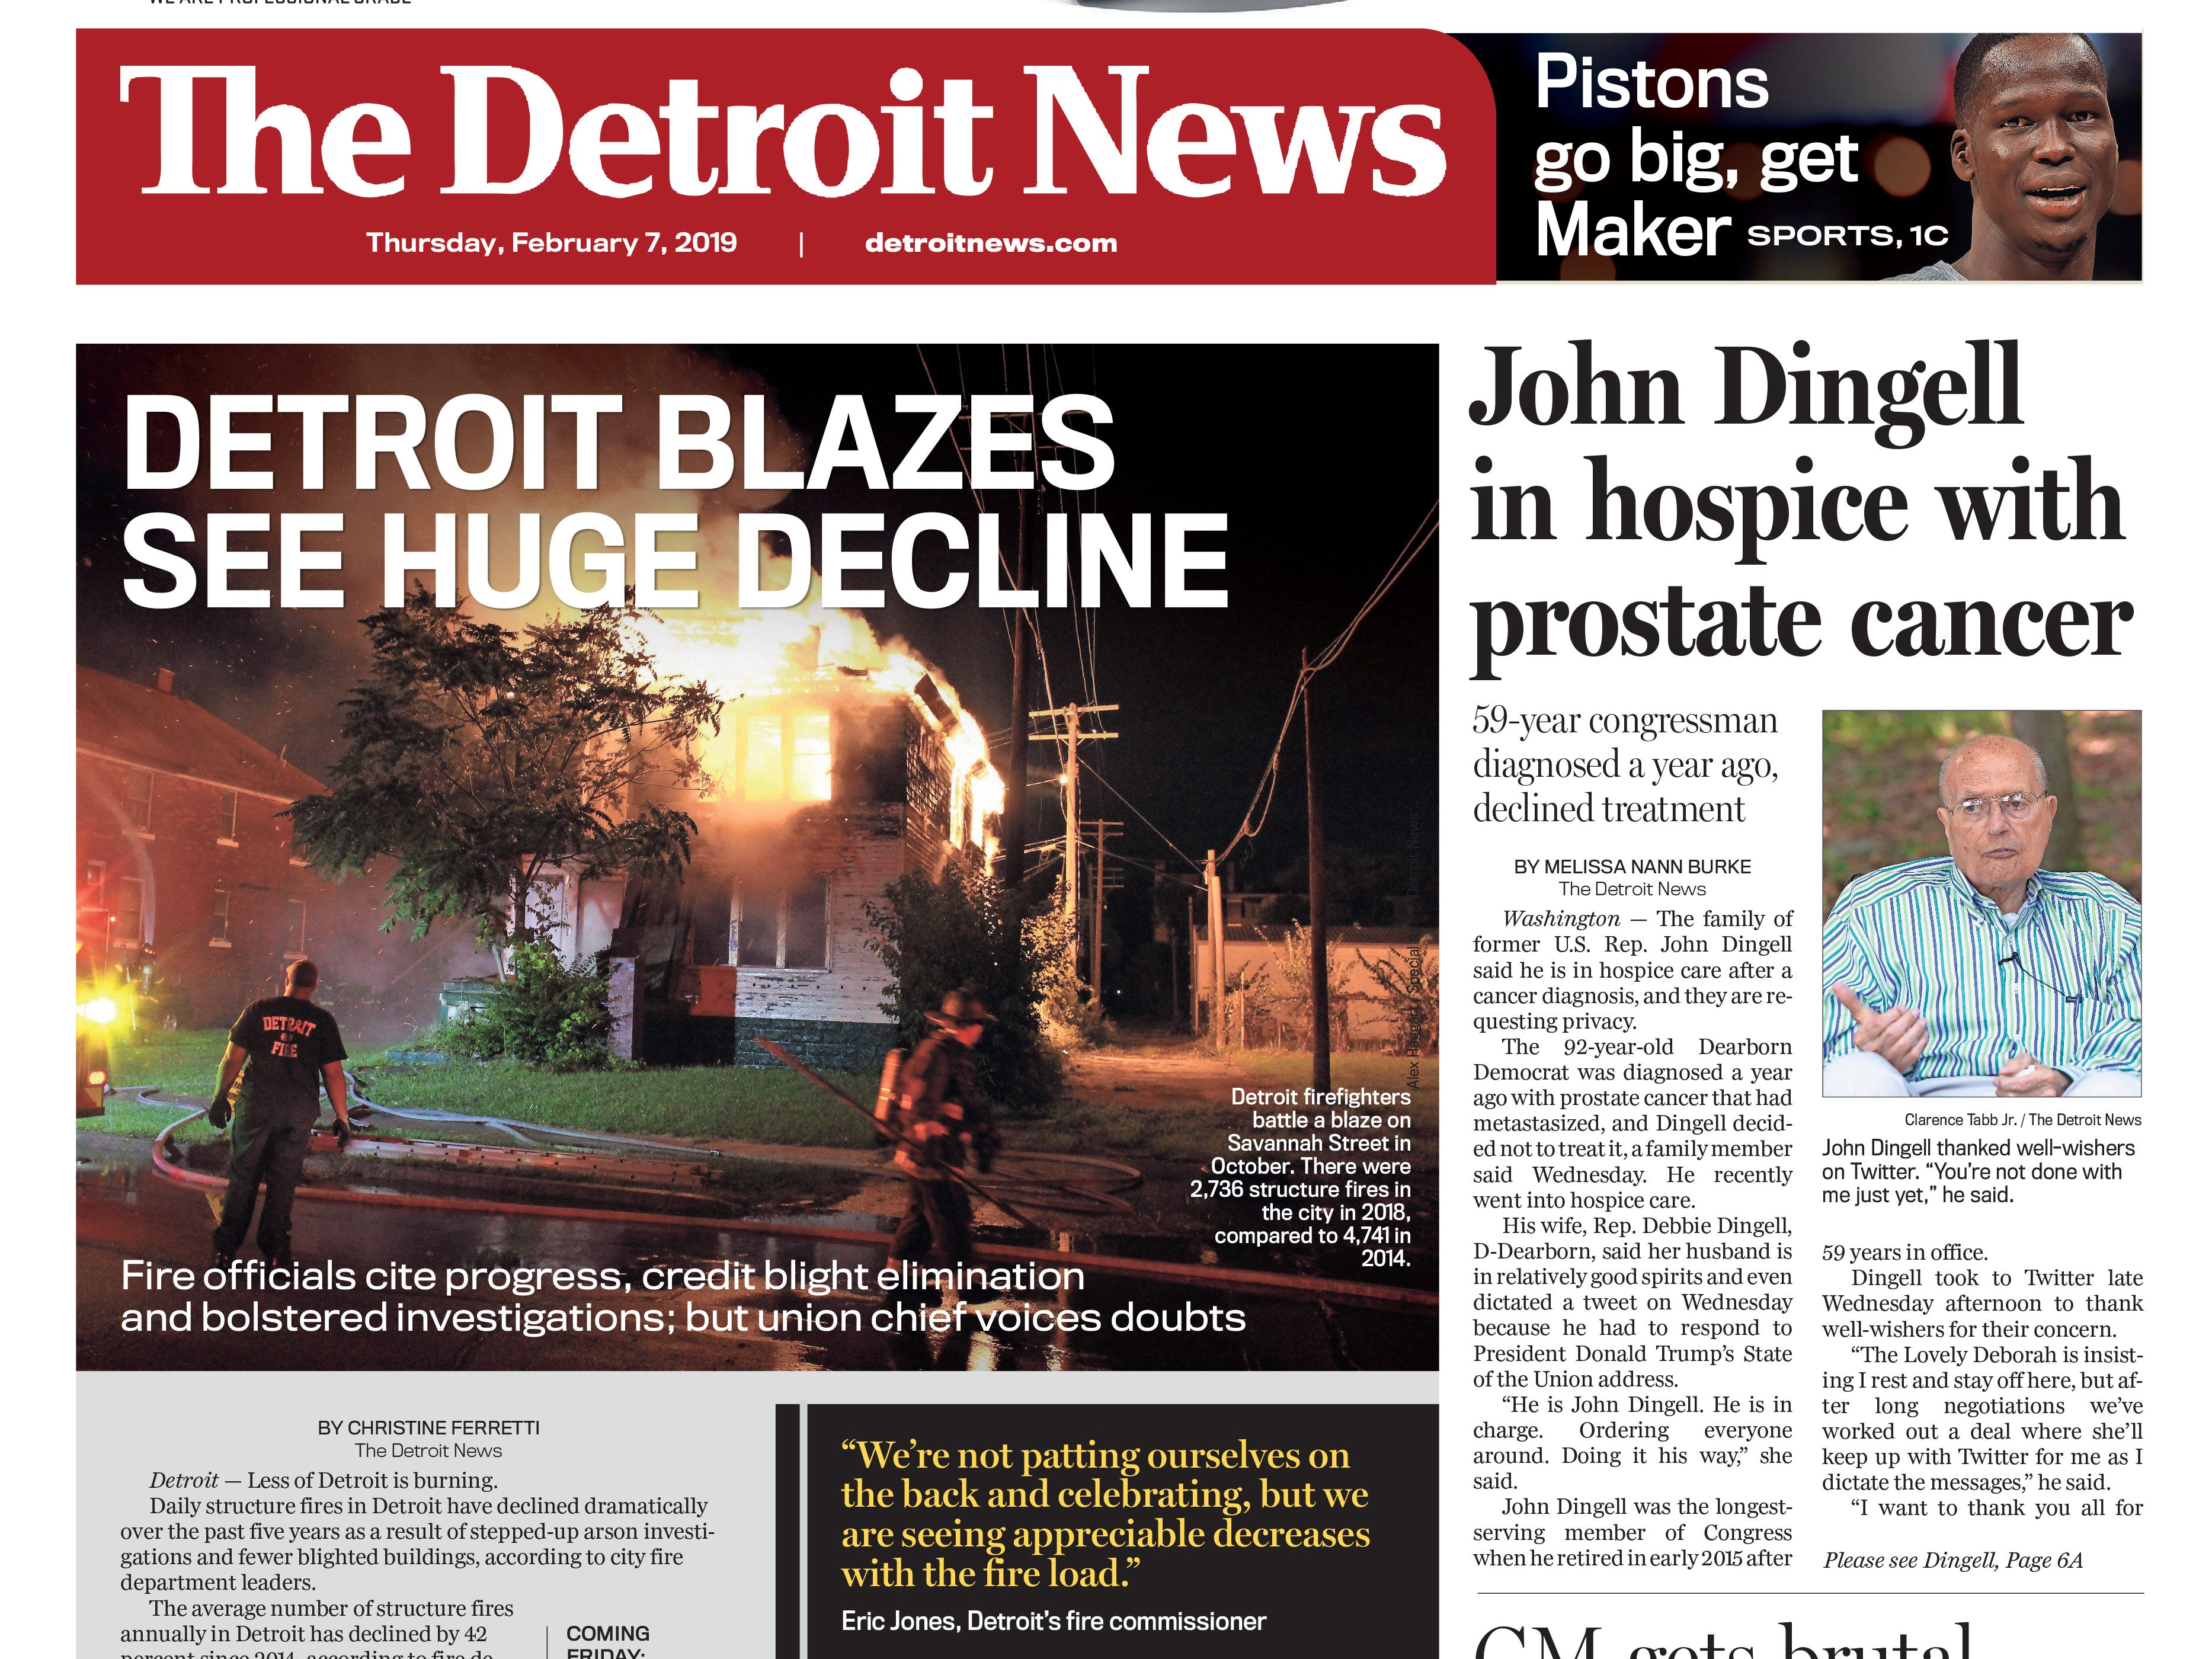 The front page of the Detroit News on Thursday, February 7, 2019.